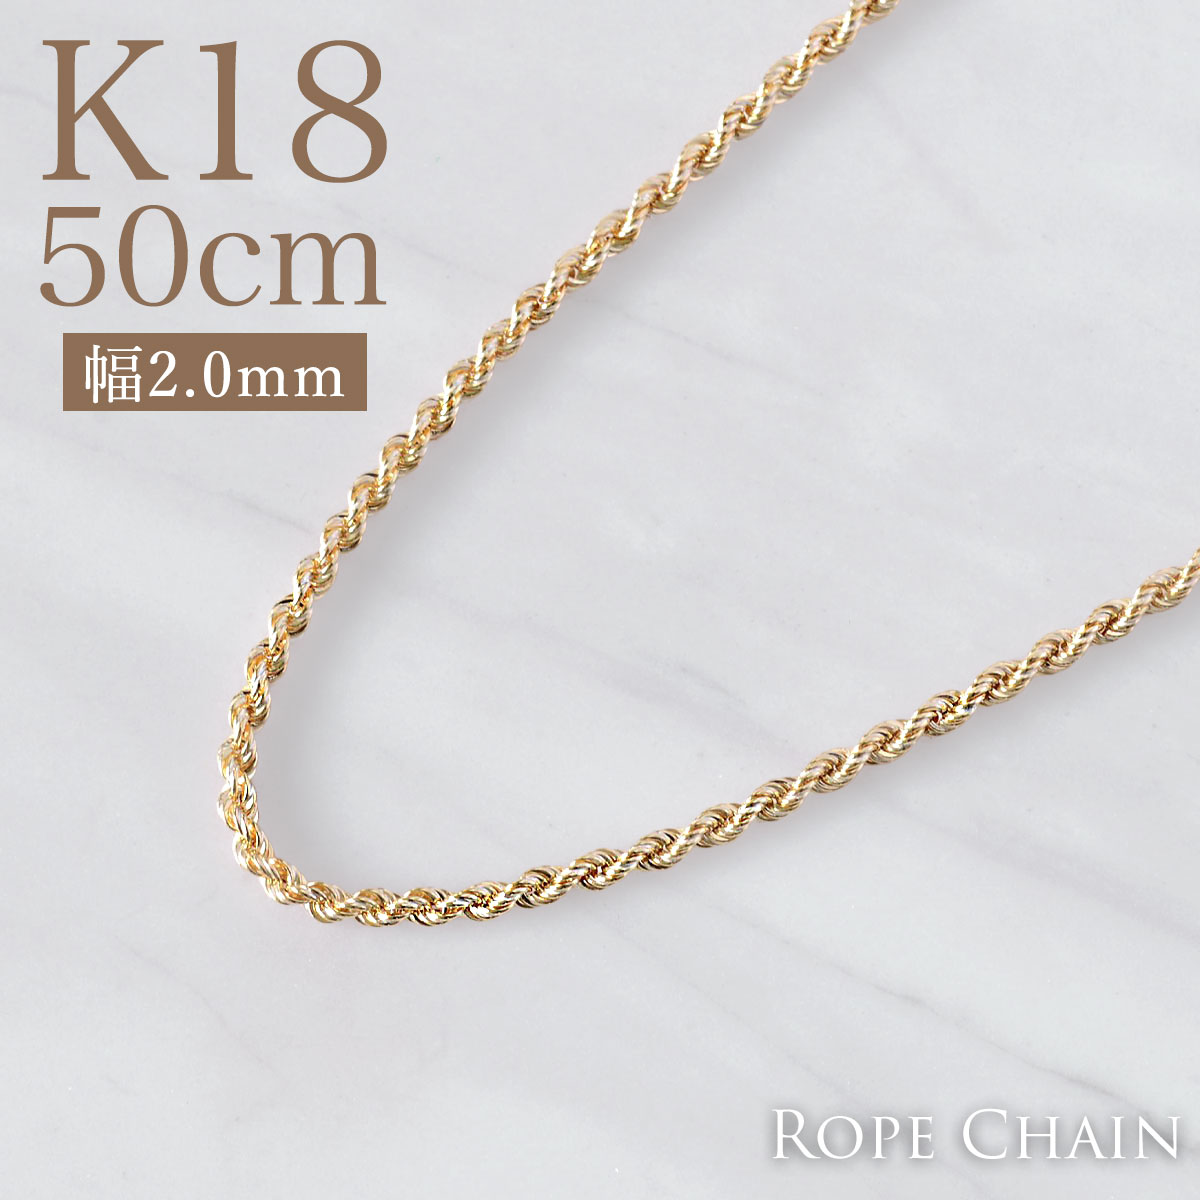 K18 イエローゴールド ロープ 幅2.0 チェーン 50cm / プレゼント ギフト gold necklace